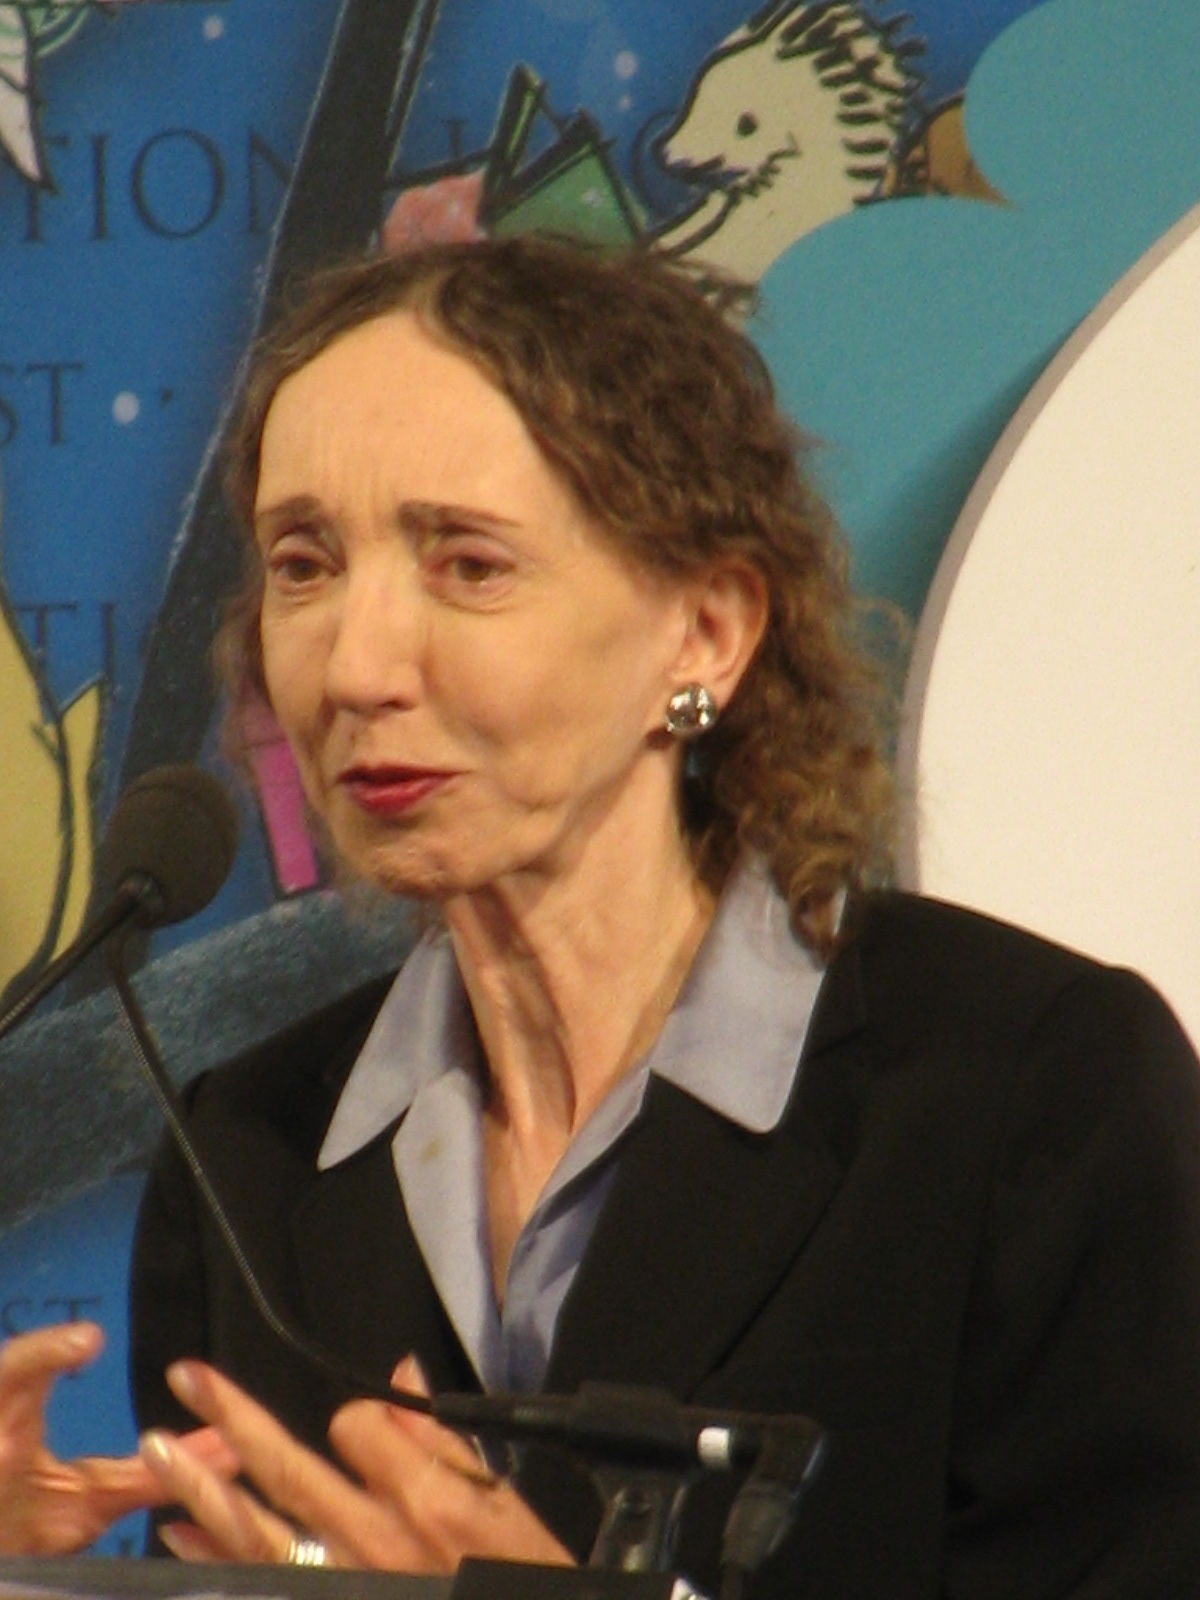 joyce carol oates where are you Joyce carol oates she arrived in madison as a graduate student in fall 1960, the  same time i began as an undergraduate while we did not meet there, we.